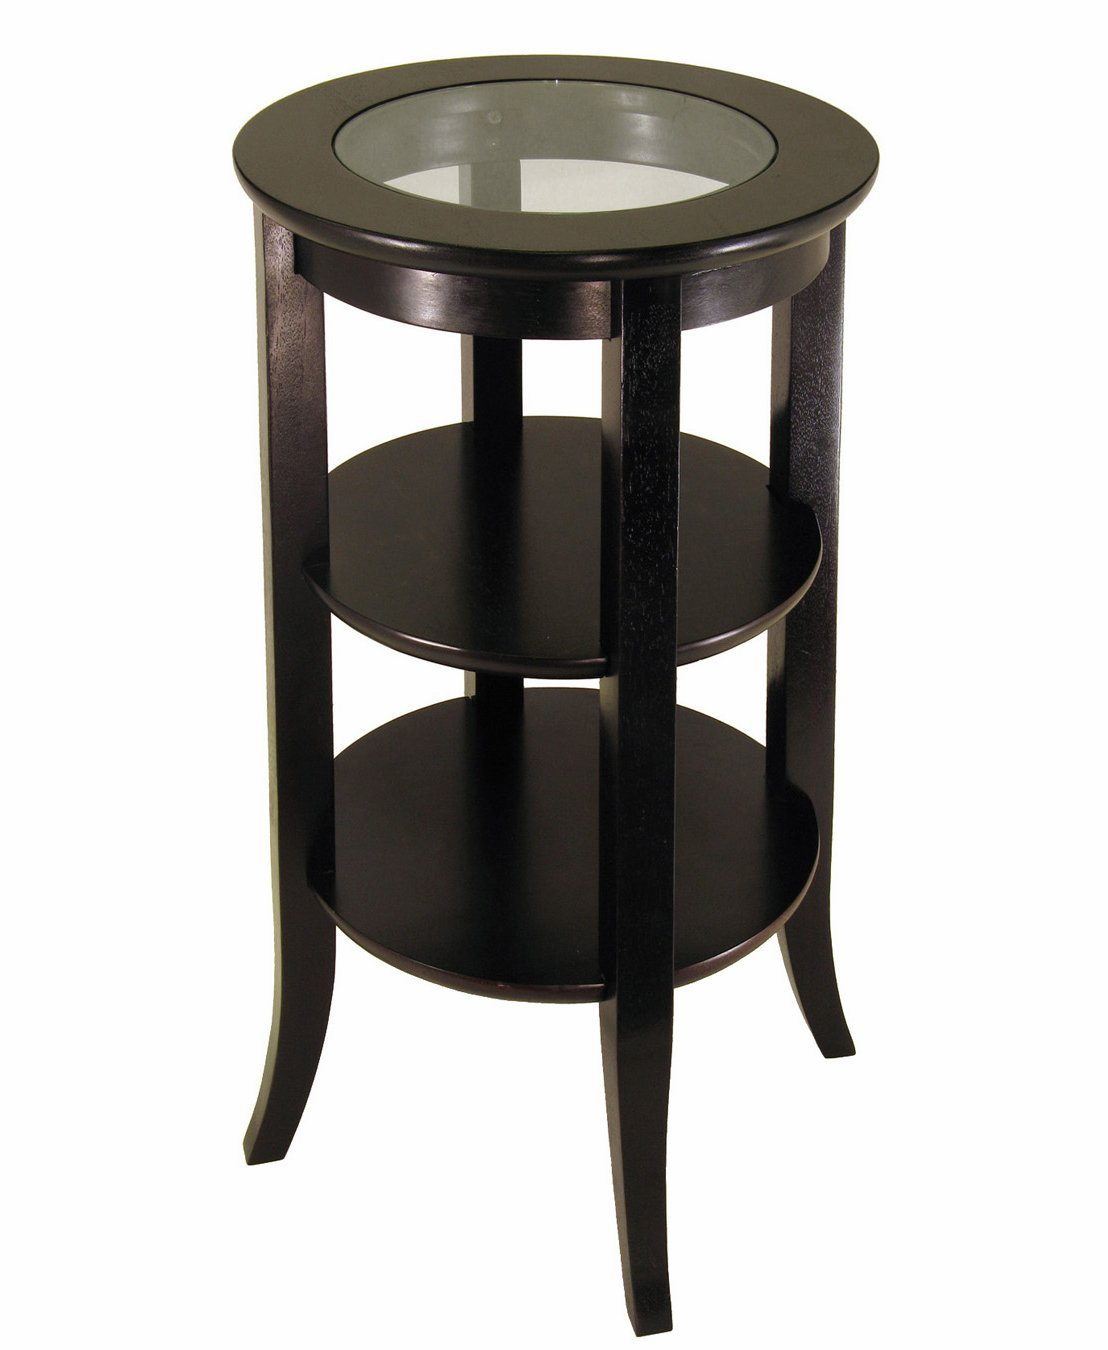 amazing small square glass end table transitional mainstays round magnificent room black bedroom side top tables target living lamp sets set matte teal accent full size affordable